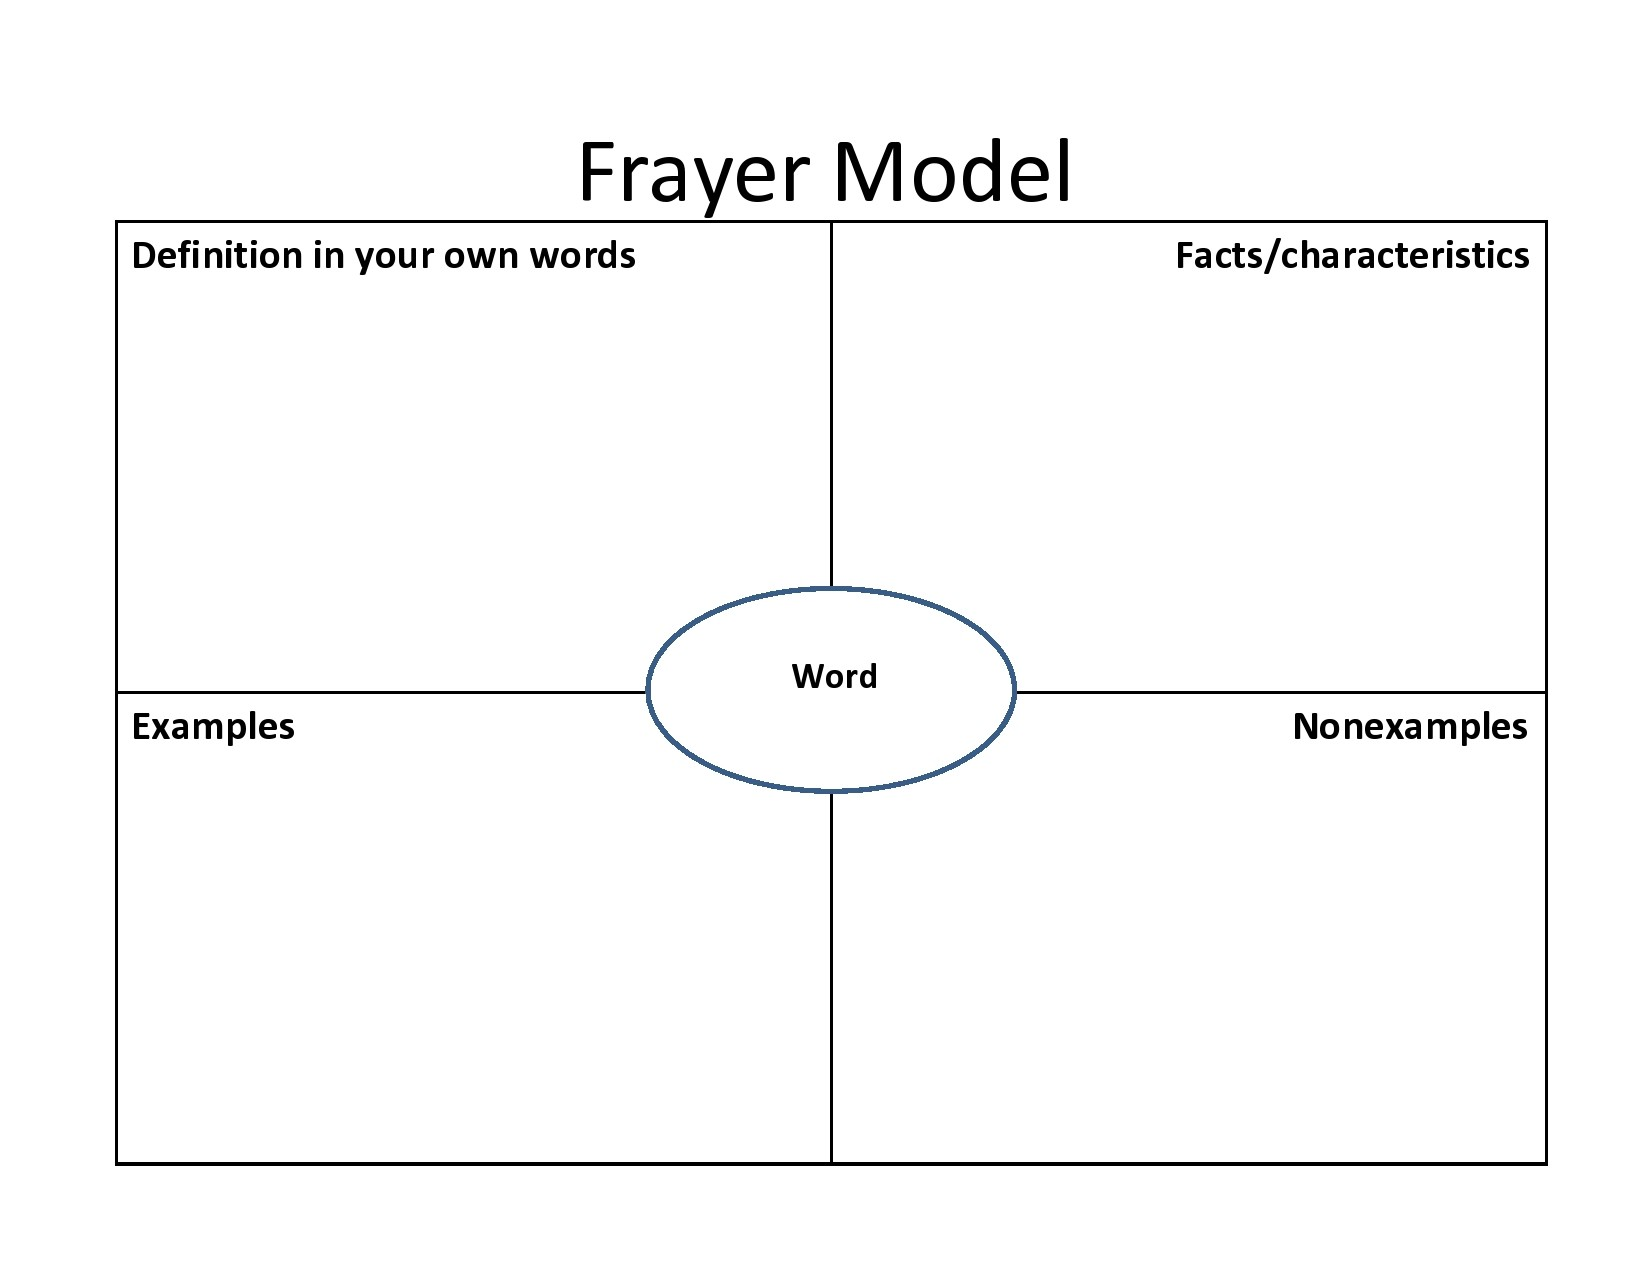 Free frayer model template 23